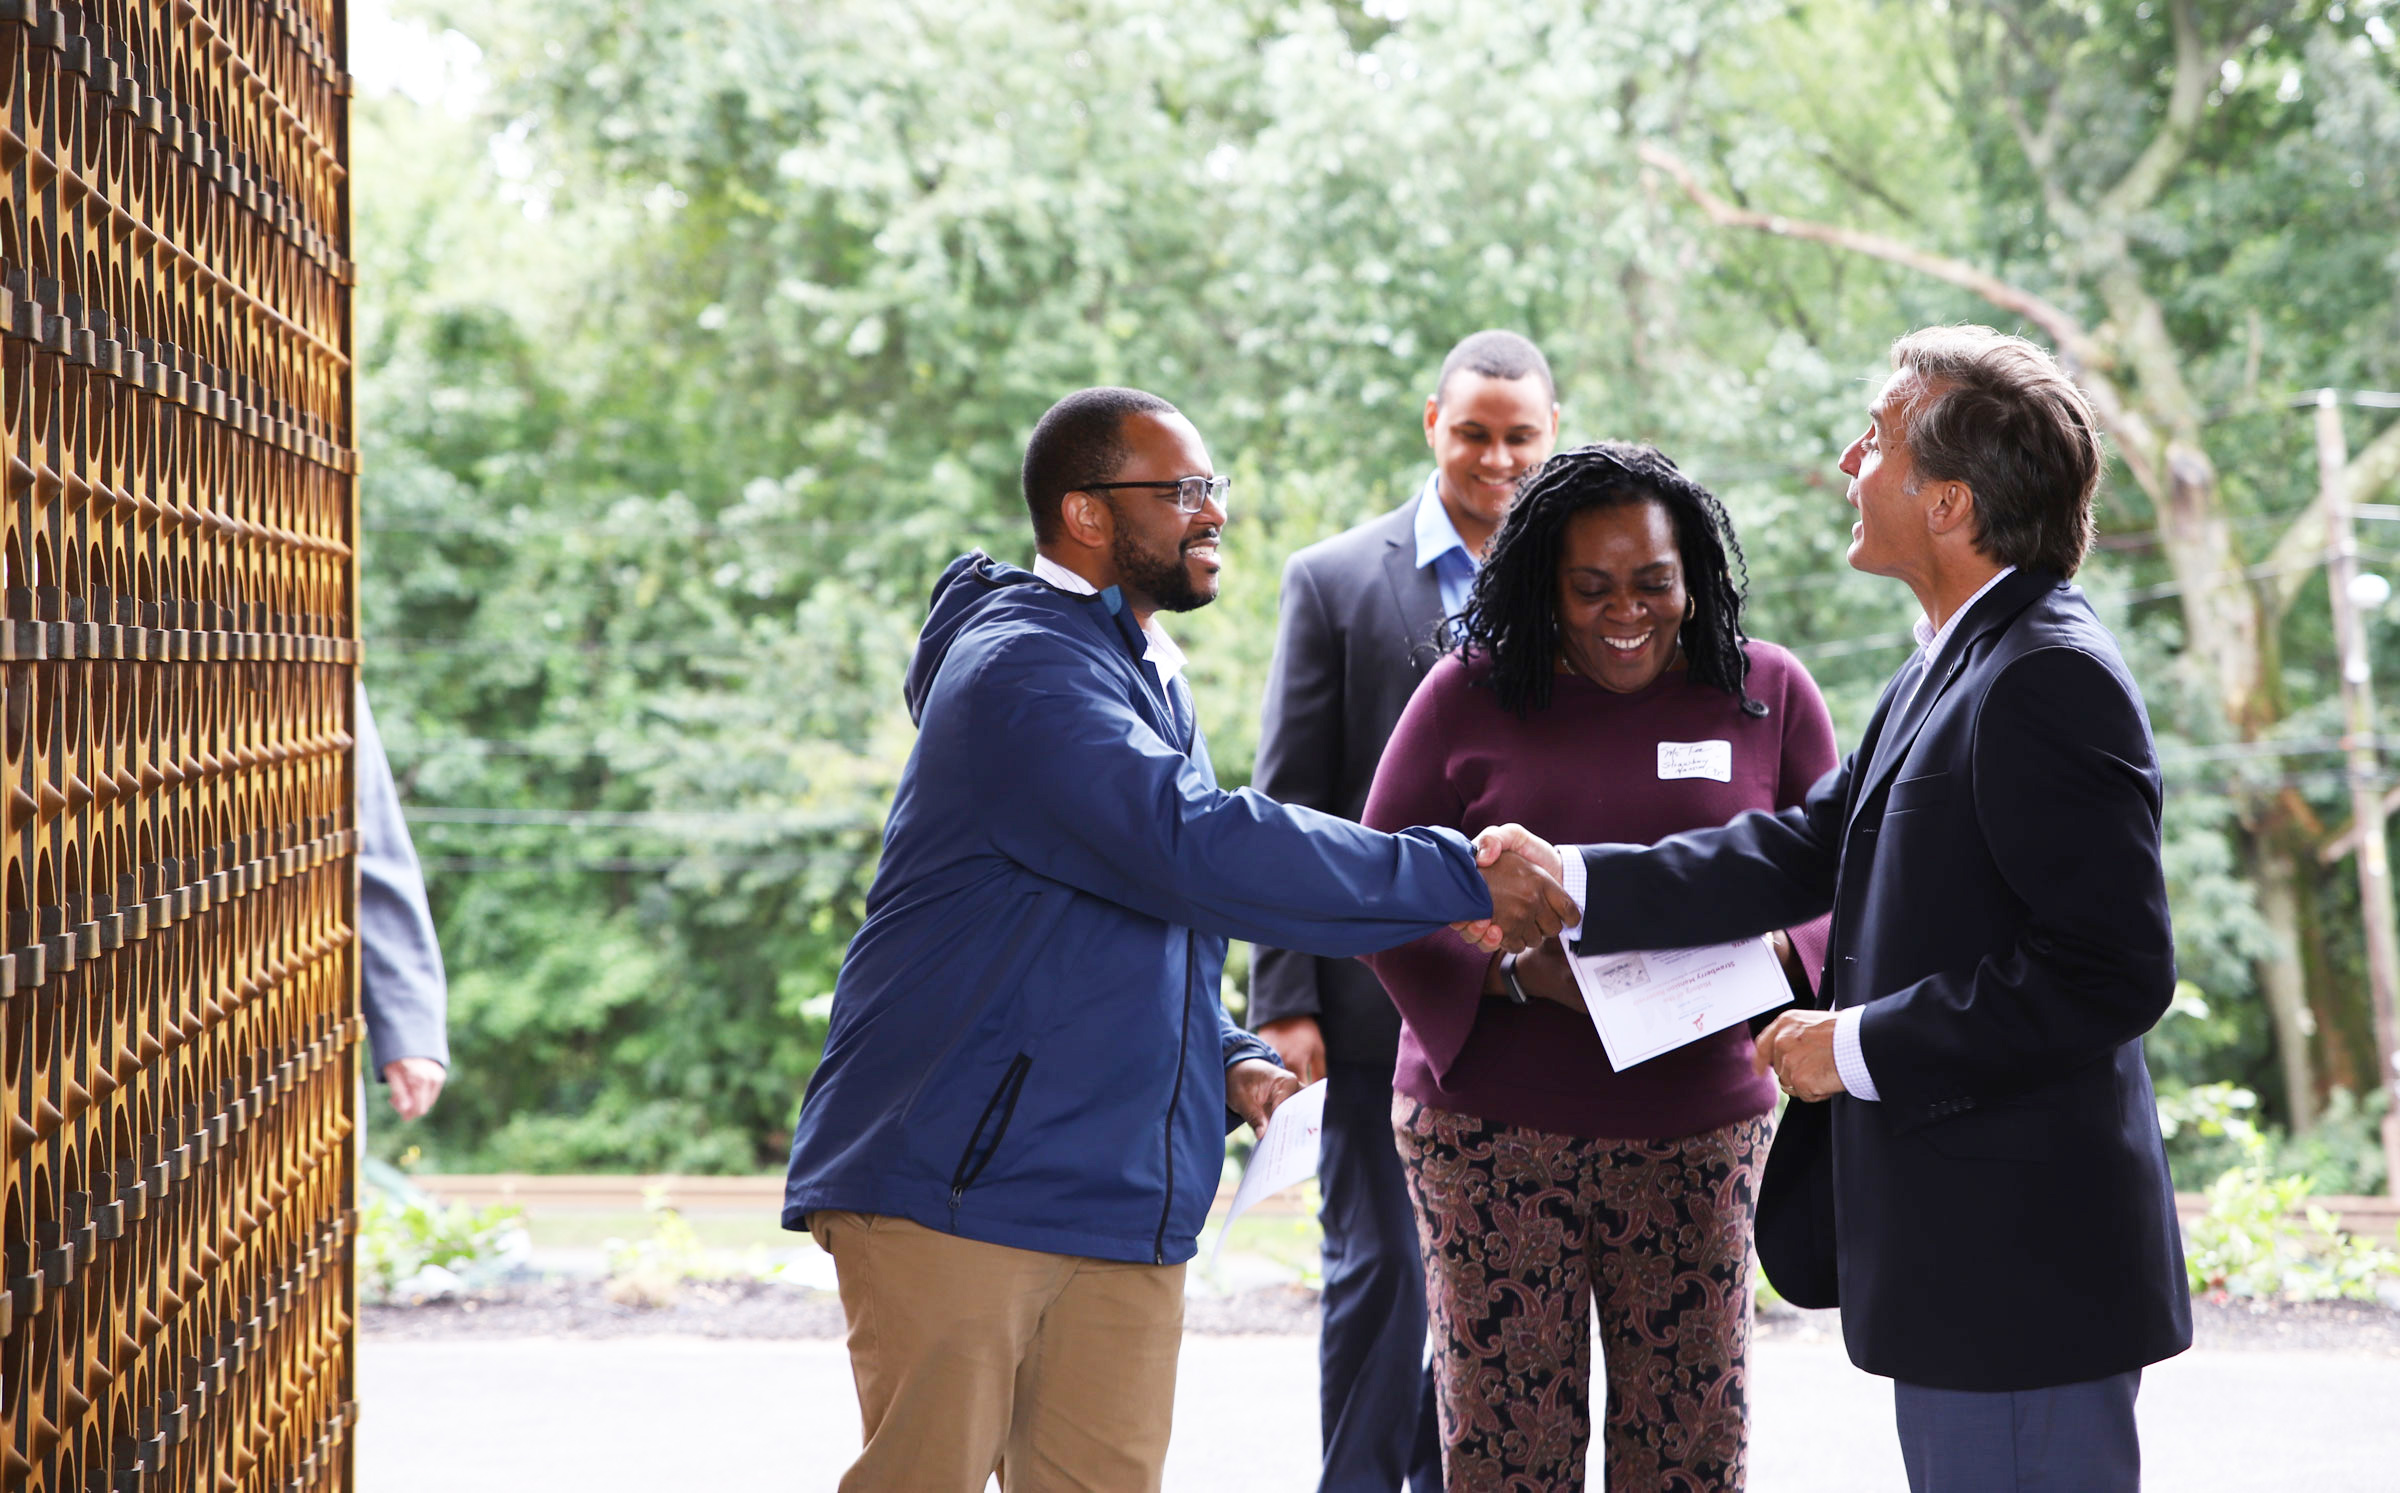 Audubon Pennsylvania executive director Greg Goldman (right) meets members of the Strawberry Mansion community at the opening of the Discovery Center. Dominic Arenas/Audubon